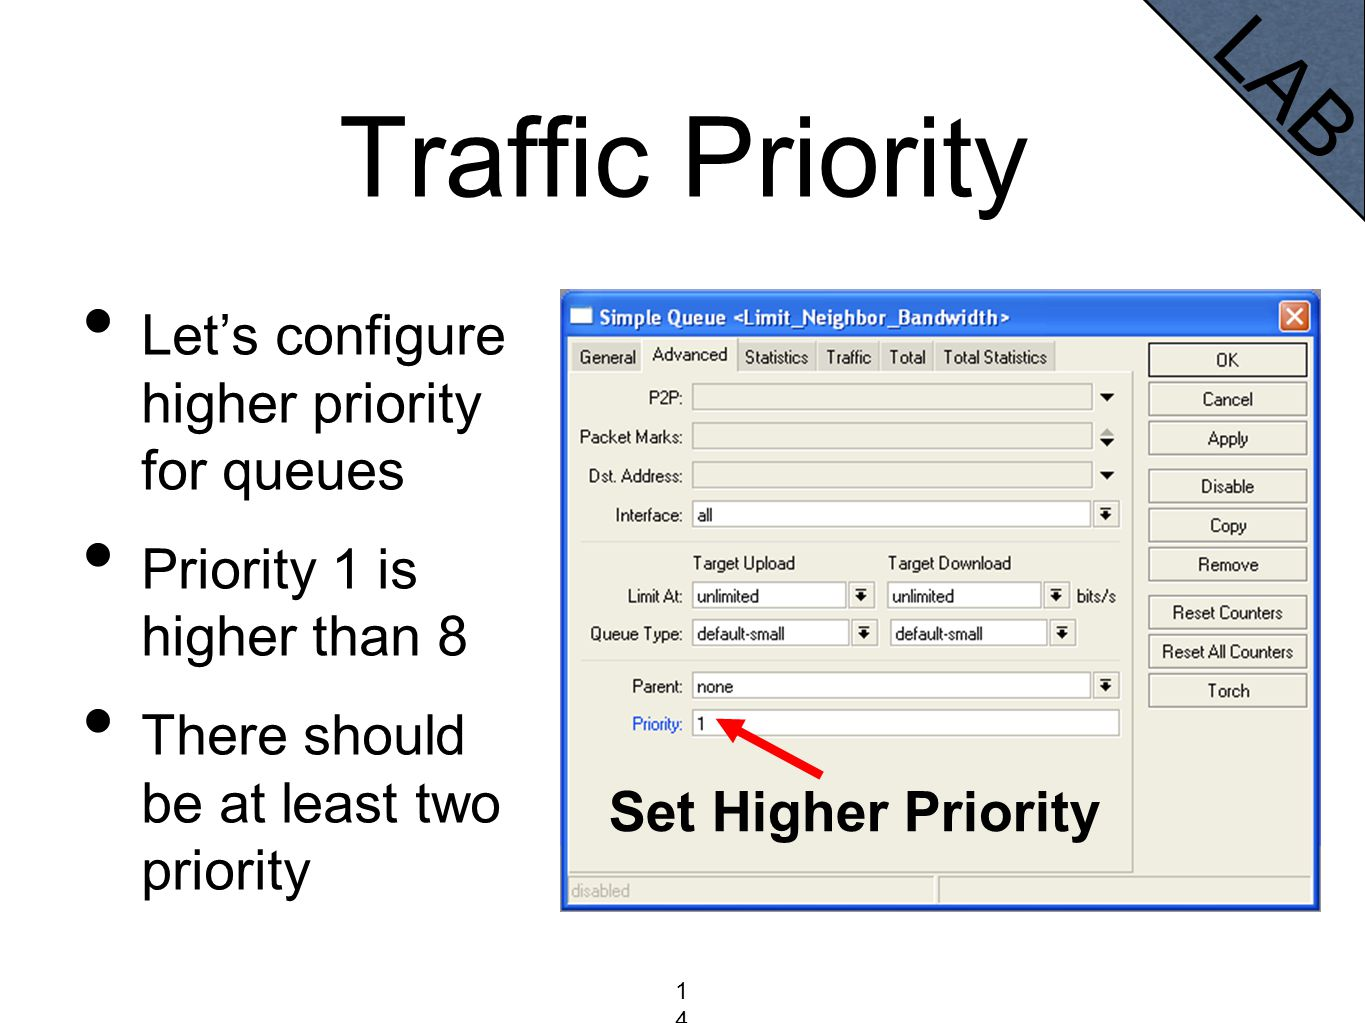 Traffic Priority Let's configure higher priority for queues Priority 1 is higher than 8 There should be at least two priority Select Queue Priority is